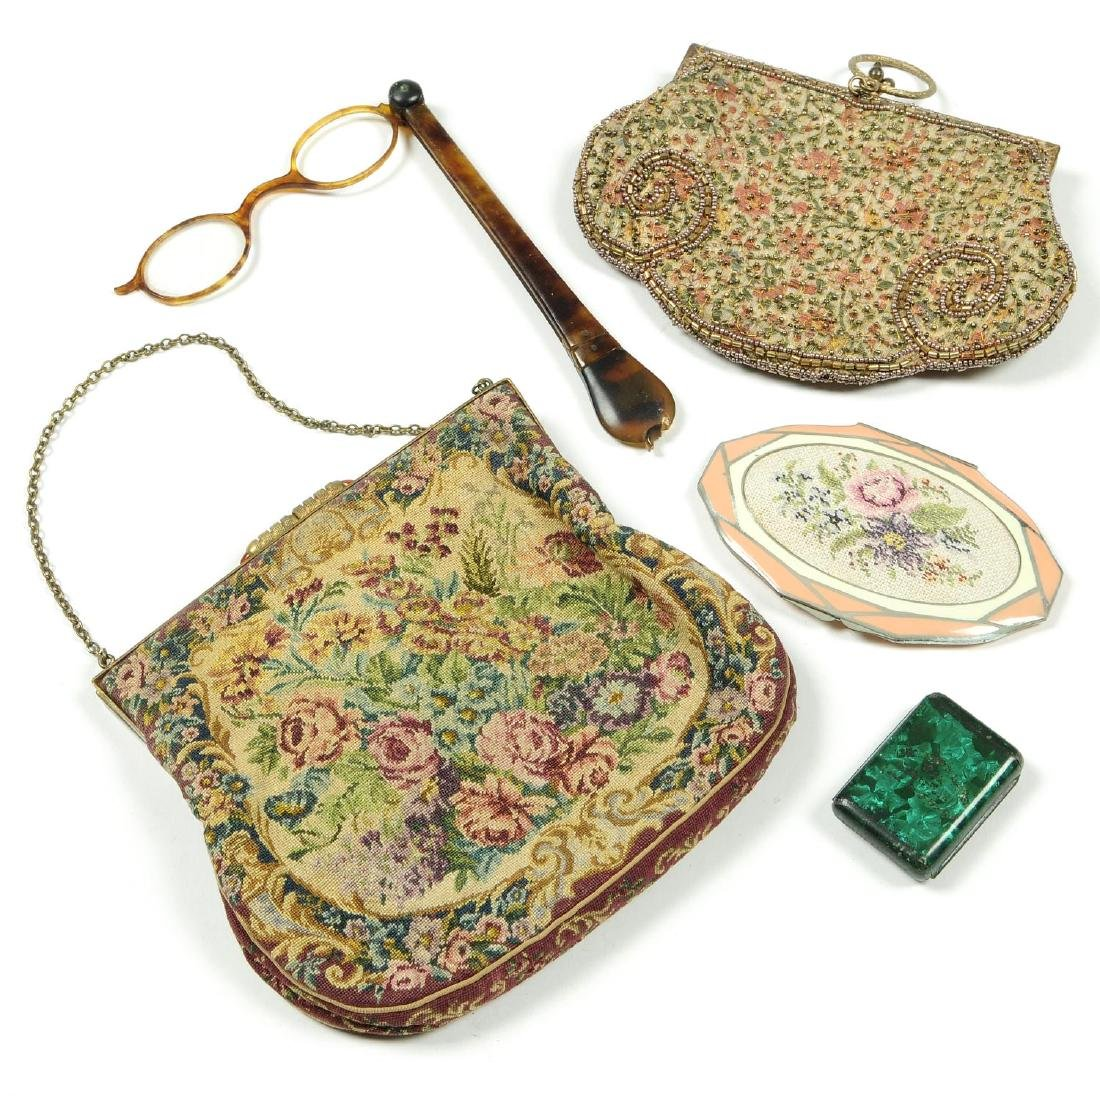 Six vintage handbags and a selection of vintage